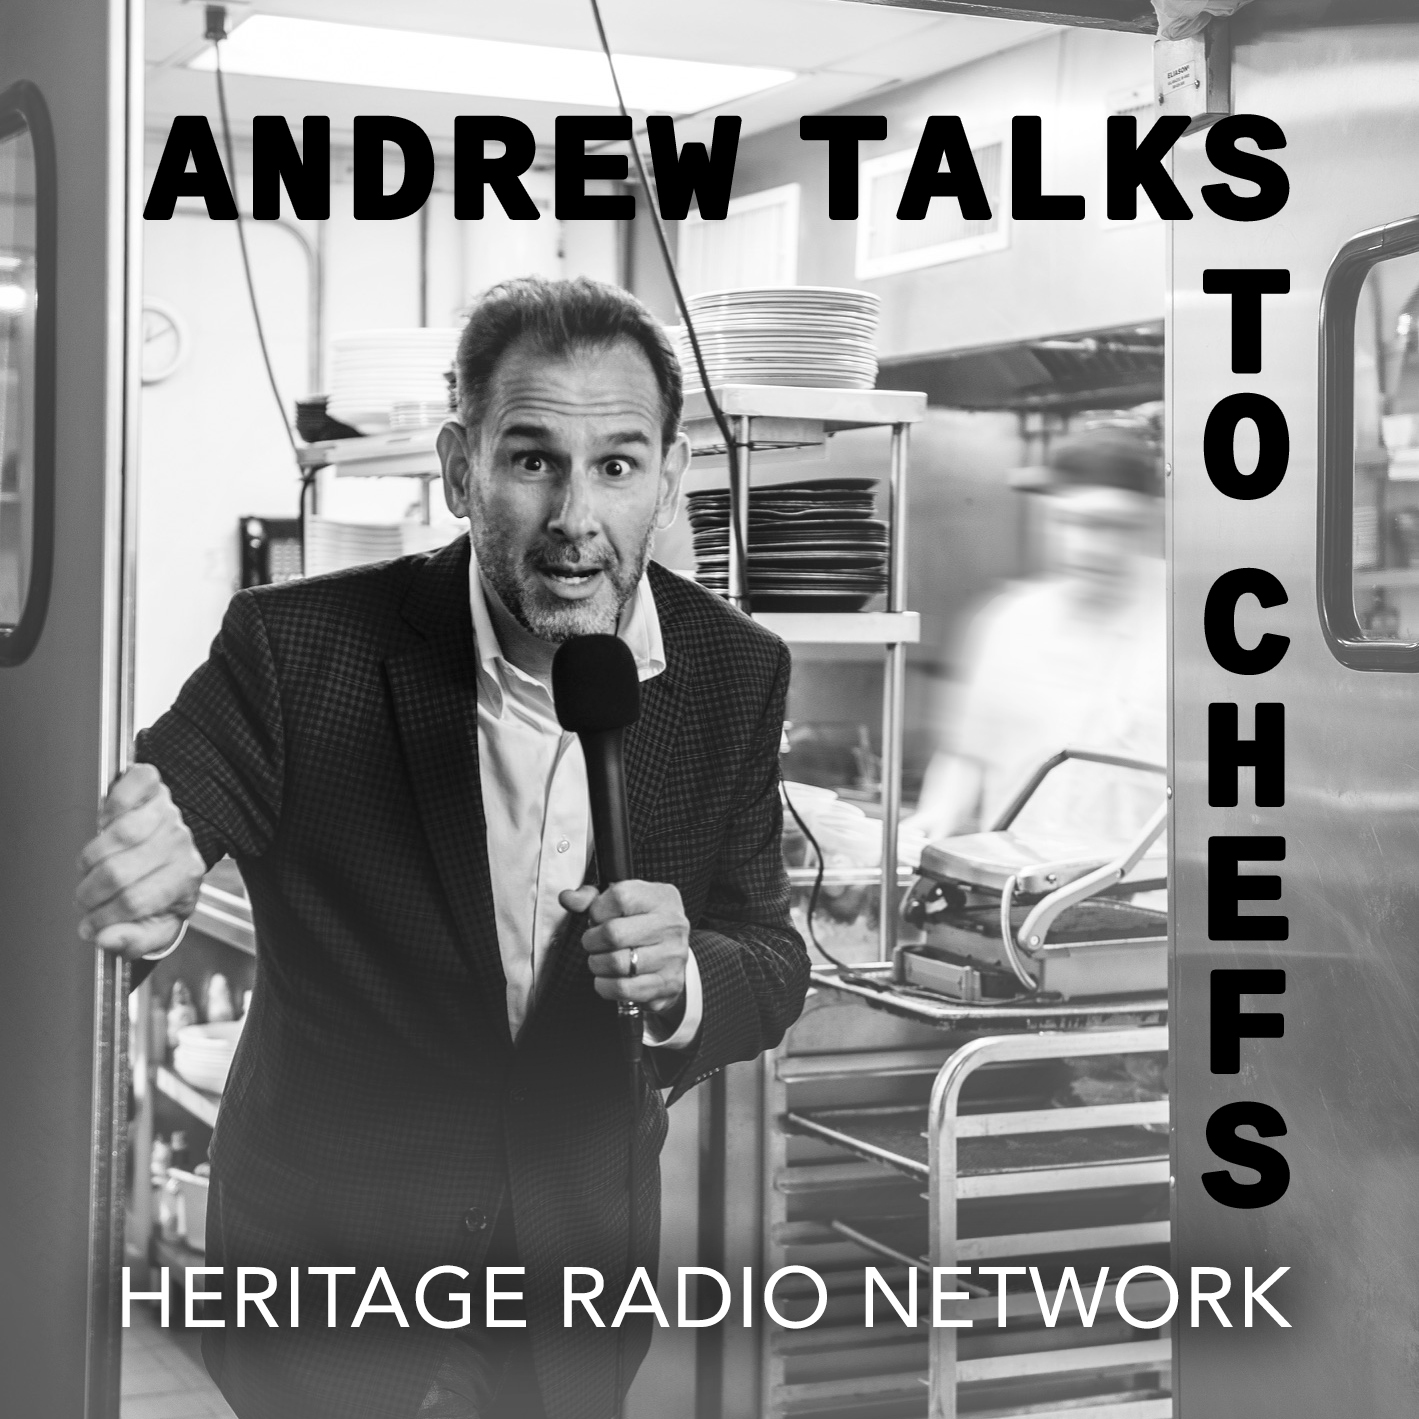 Andrew Talks to Chefs Logo